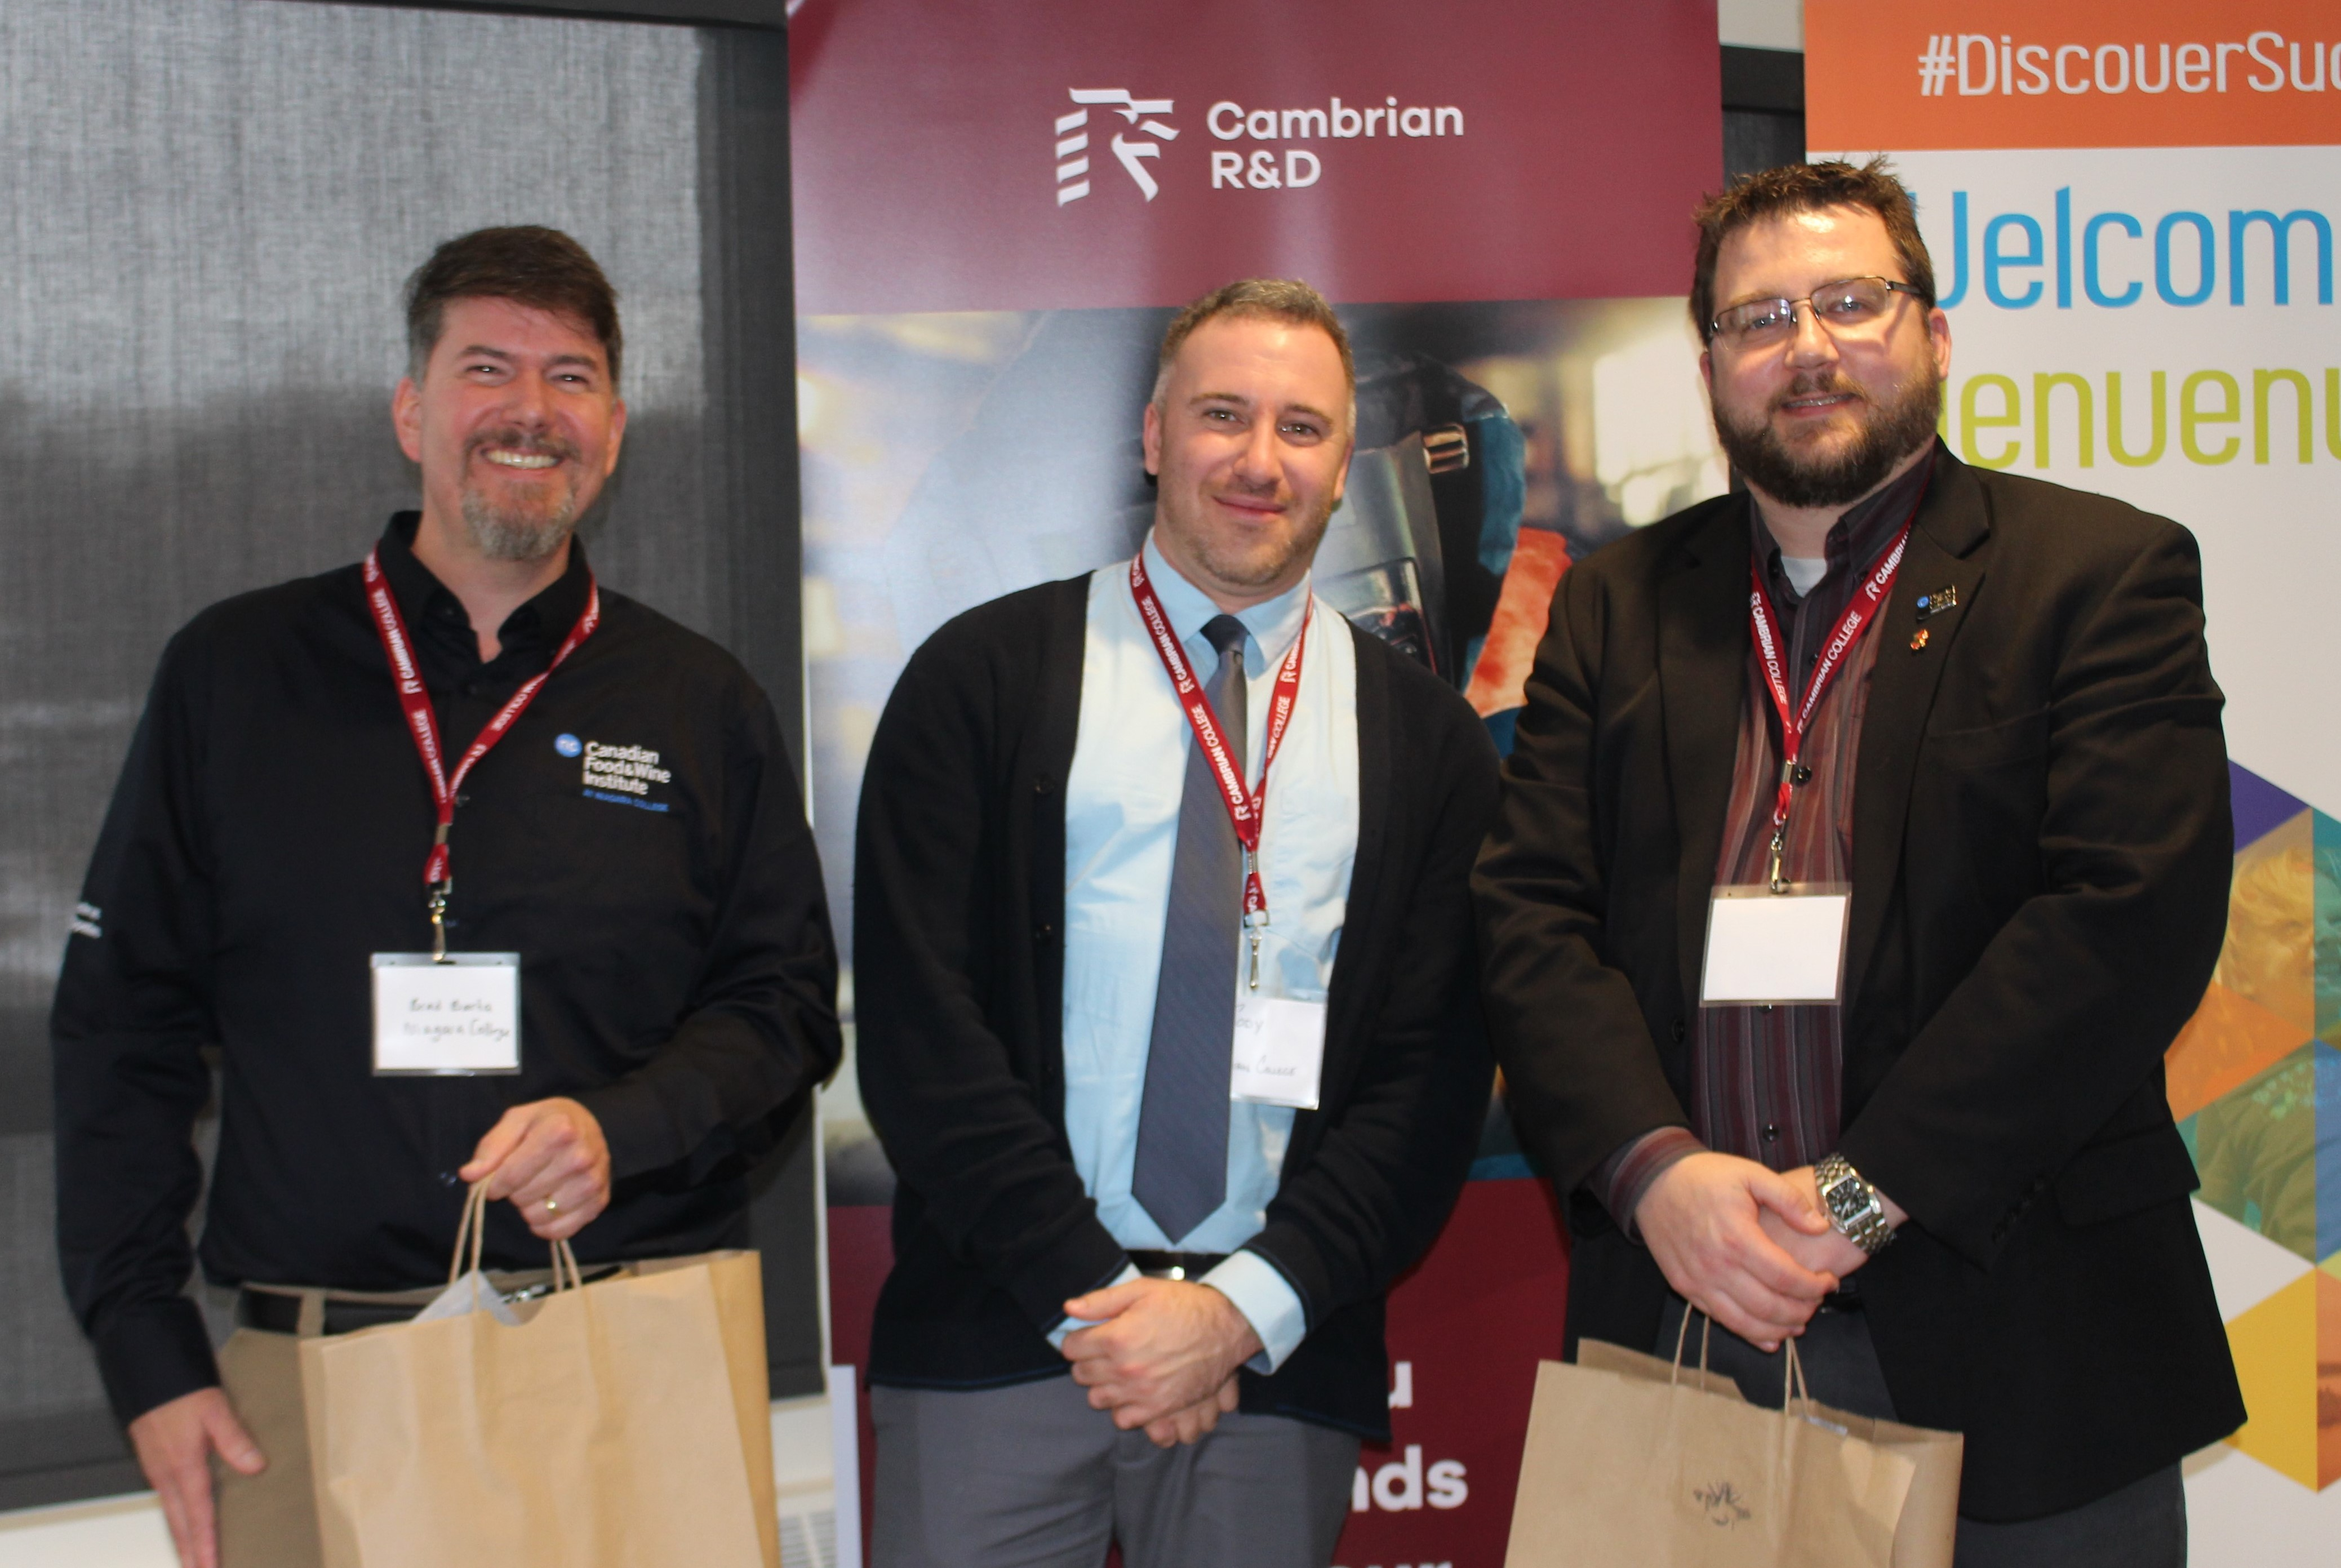 Regional brewers and distillers tapped into resources at Sudbury college's brewing summit